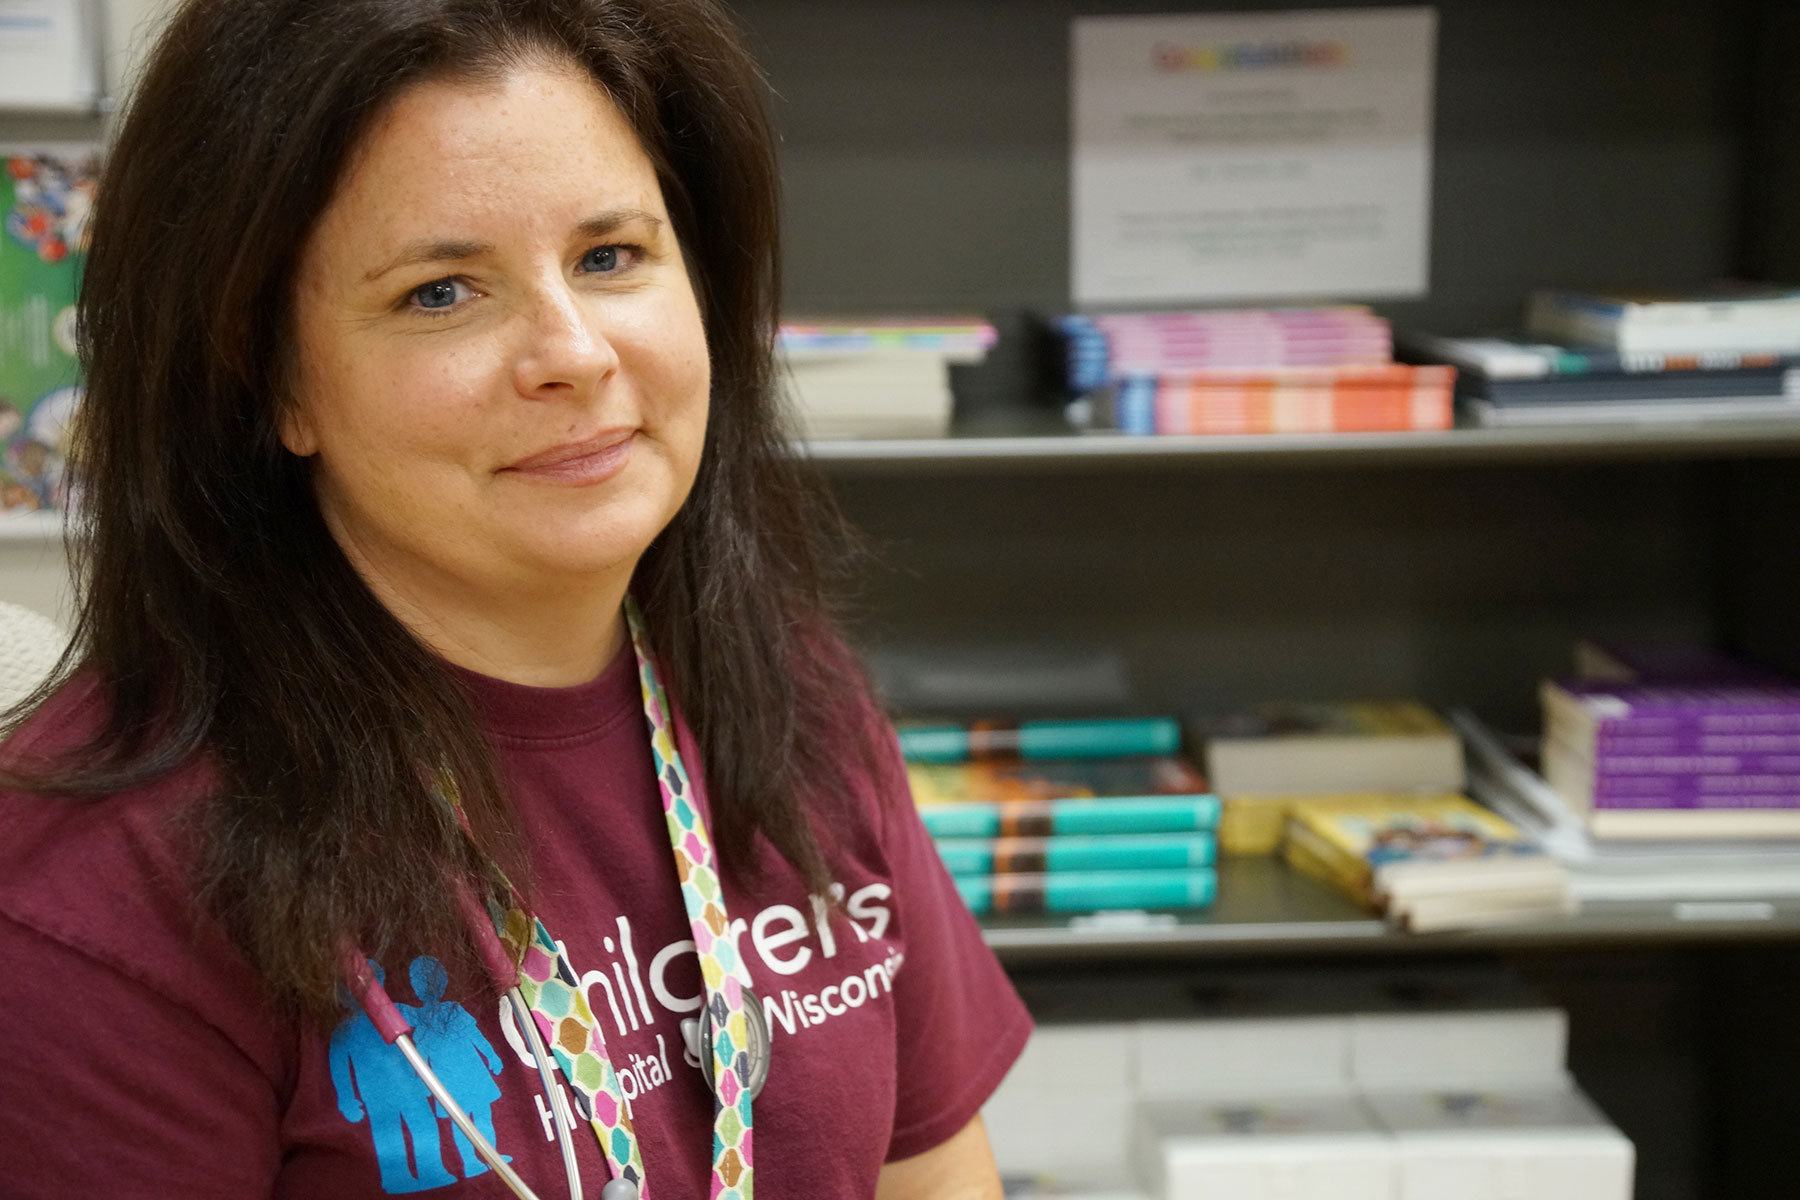 Reach Out and Read Program features culture relevant books